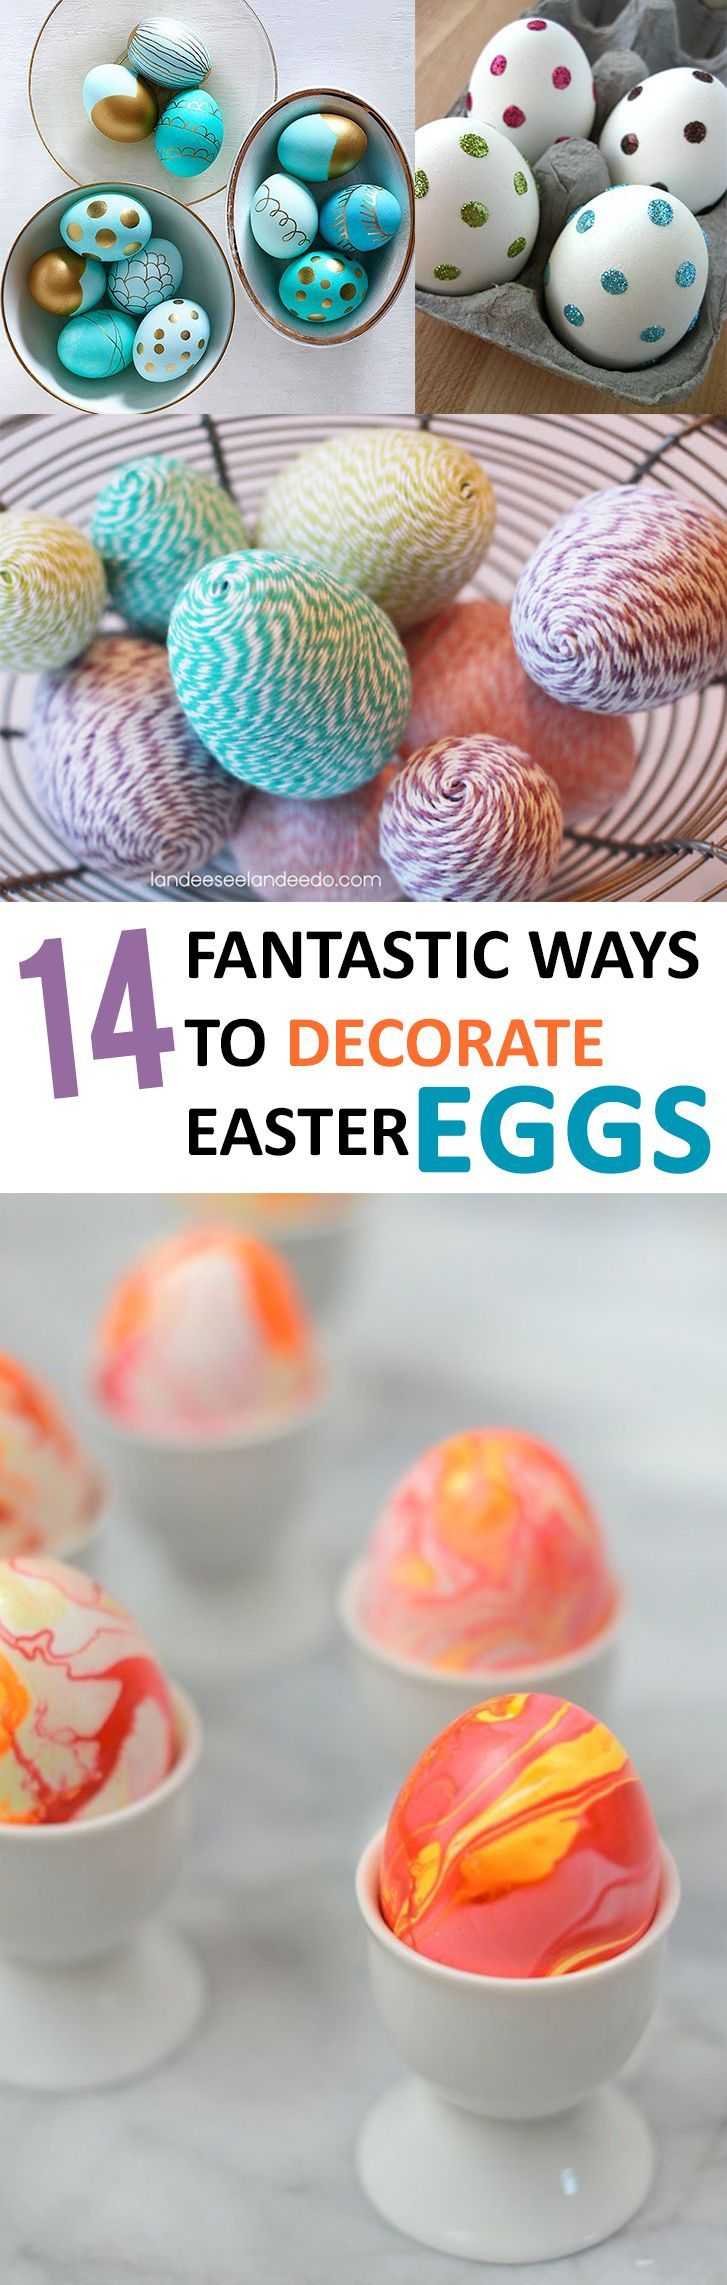 Spring butterfly pasta decor 25 easter and spring decorations - 14 Fantastic Ways To Decorate Easter Eggs